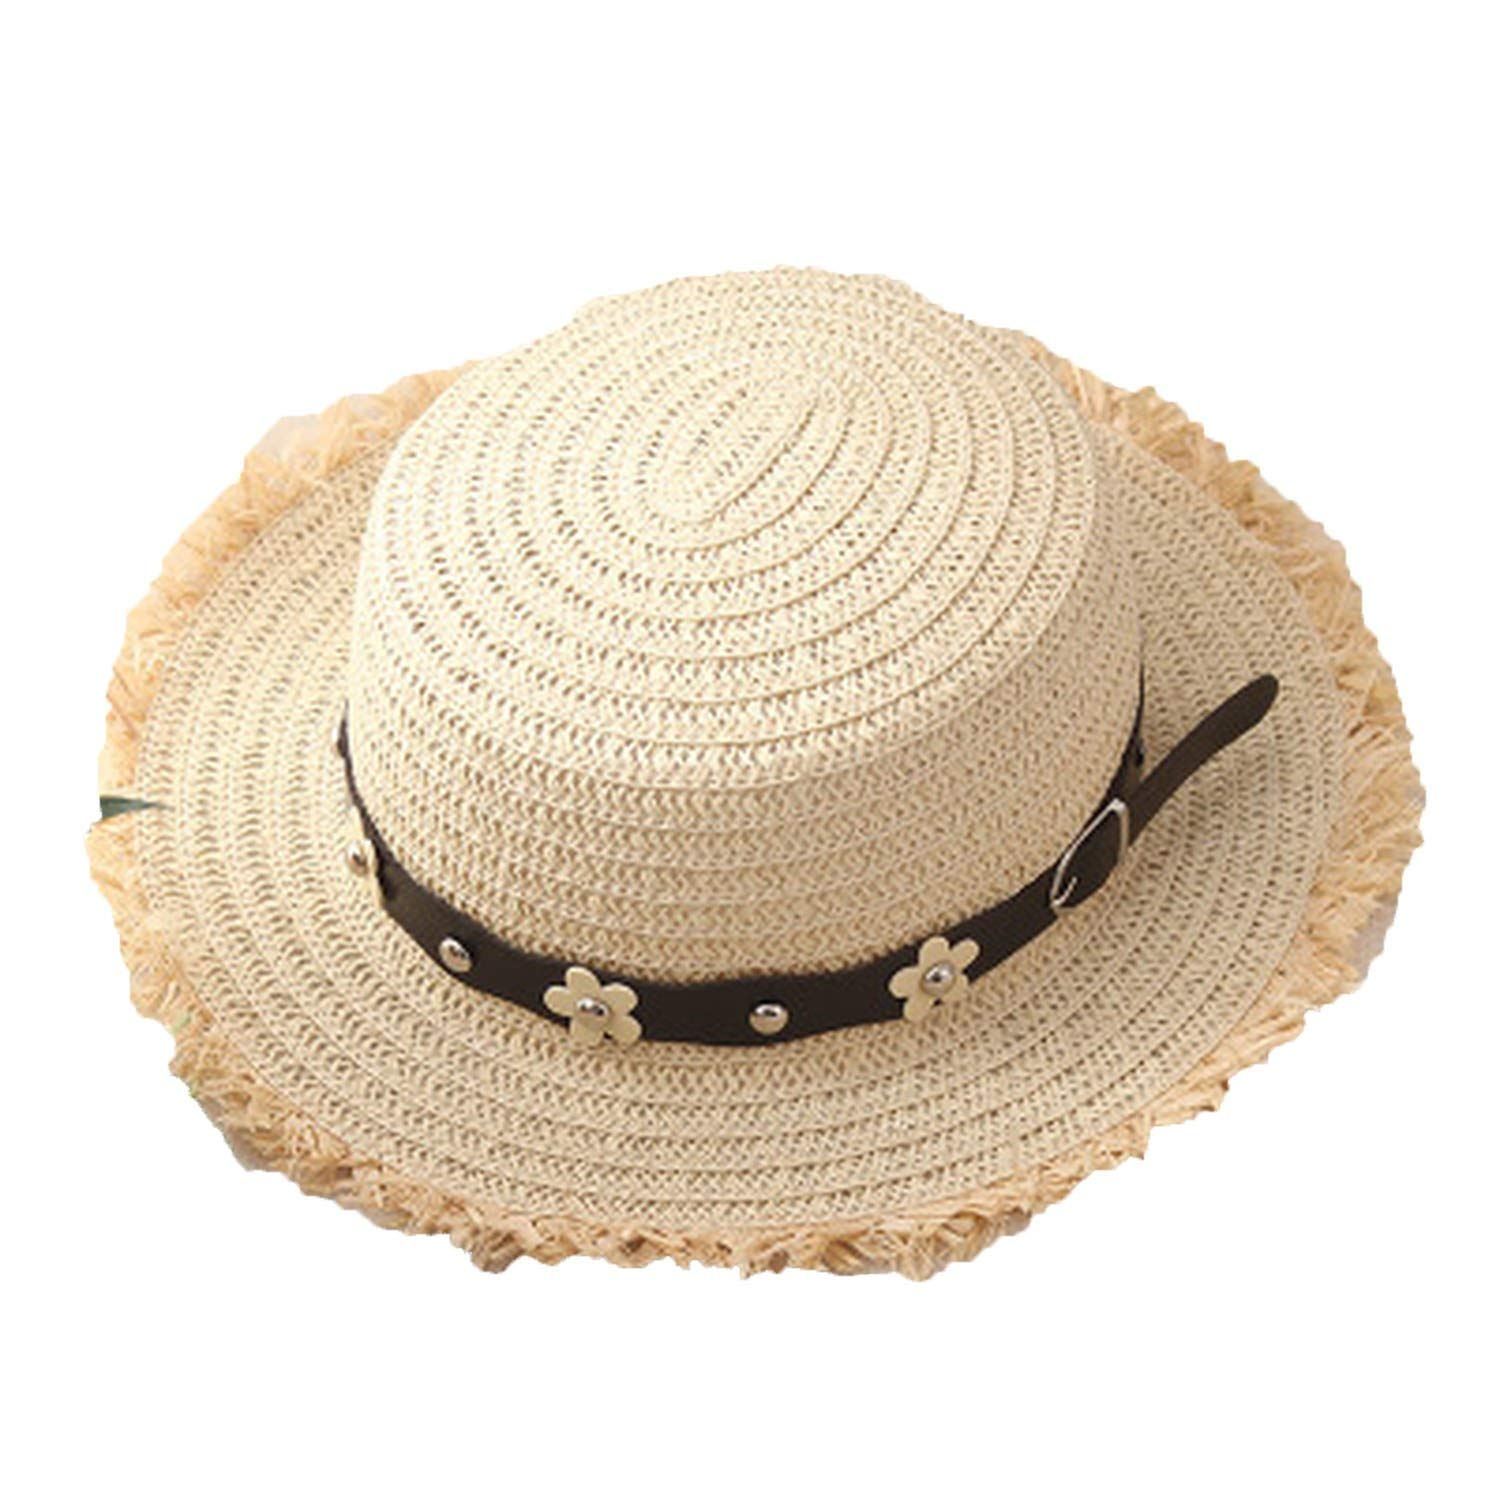 f3ca8adb Get Quotations · Flat Top Straw Boater Hats for Summer Wide Brim Beach Sun  Hats with Tassels 2018 Straw